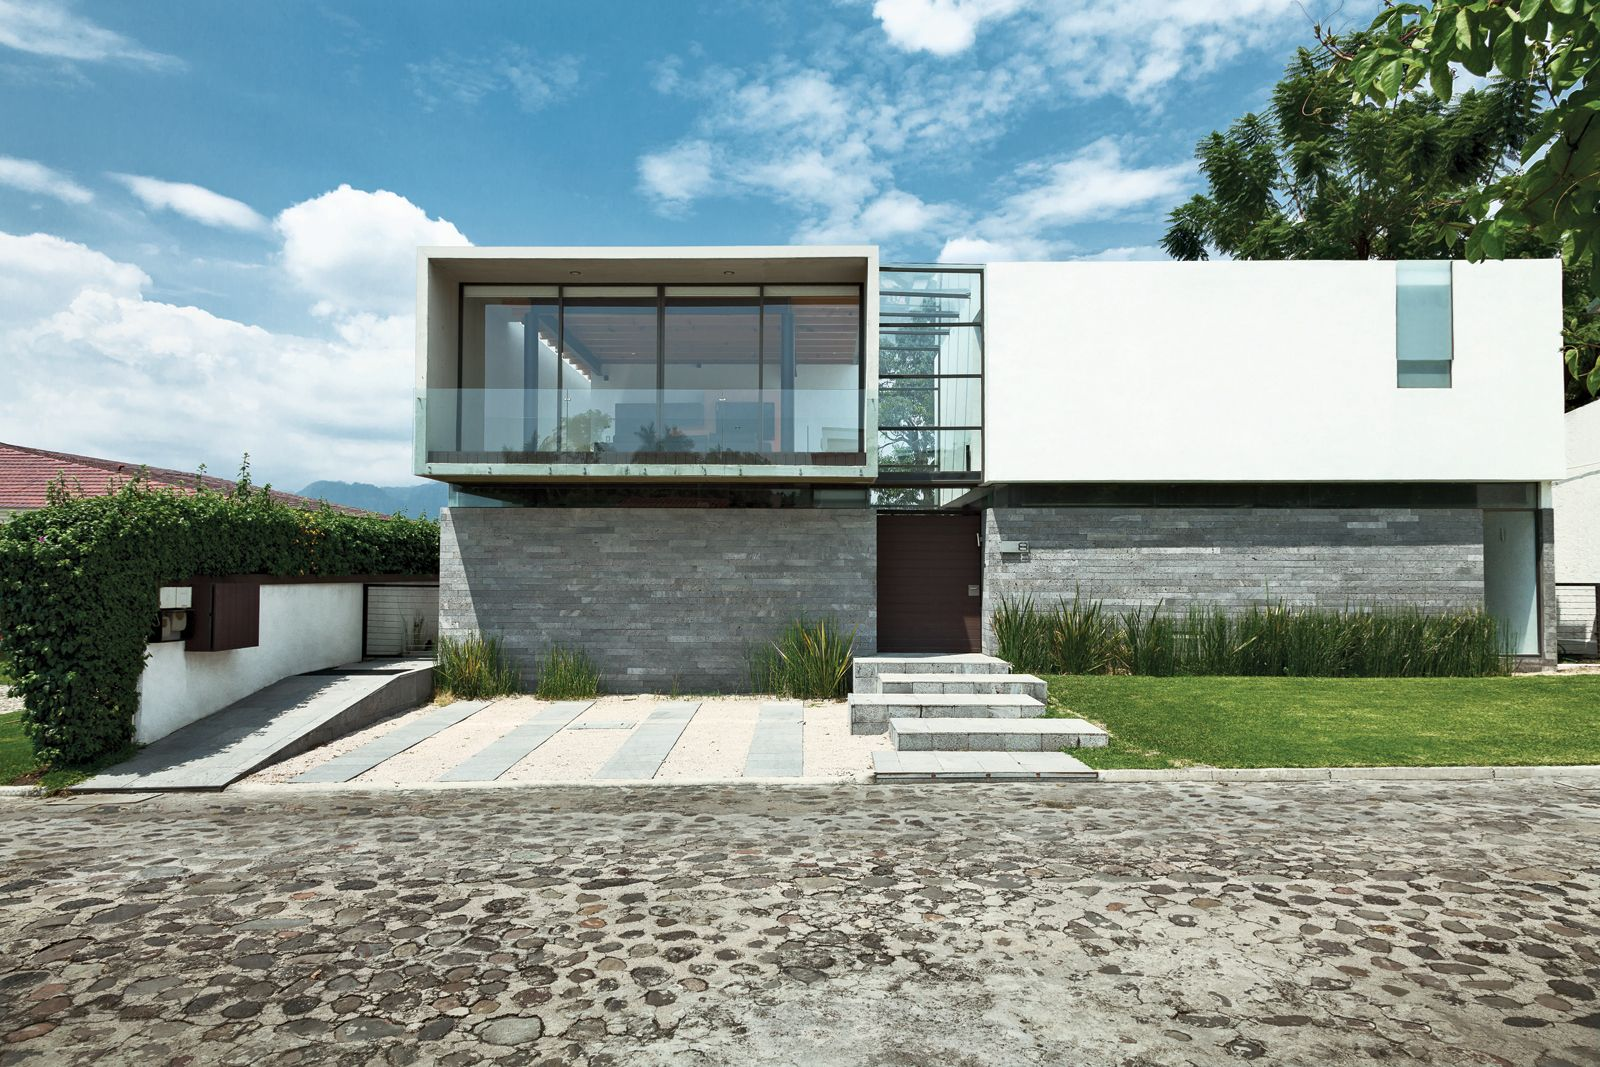 An Affordable HighDesign Vacation Home in Mexico Mexico city